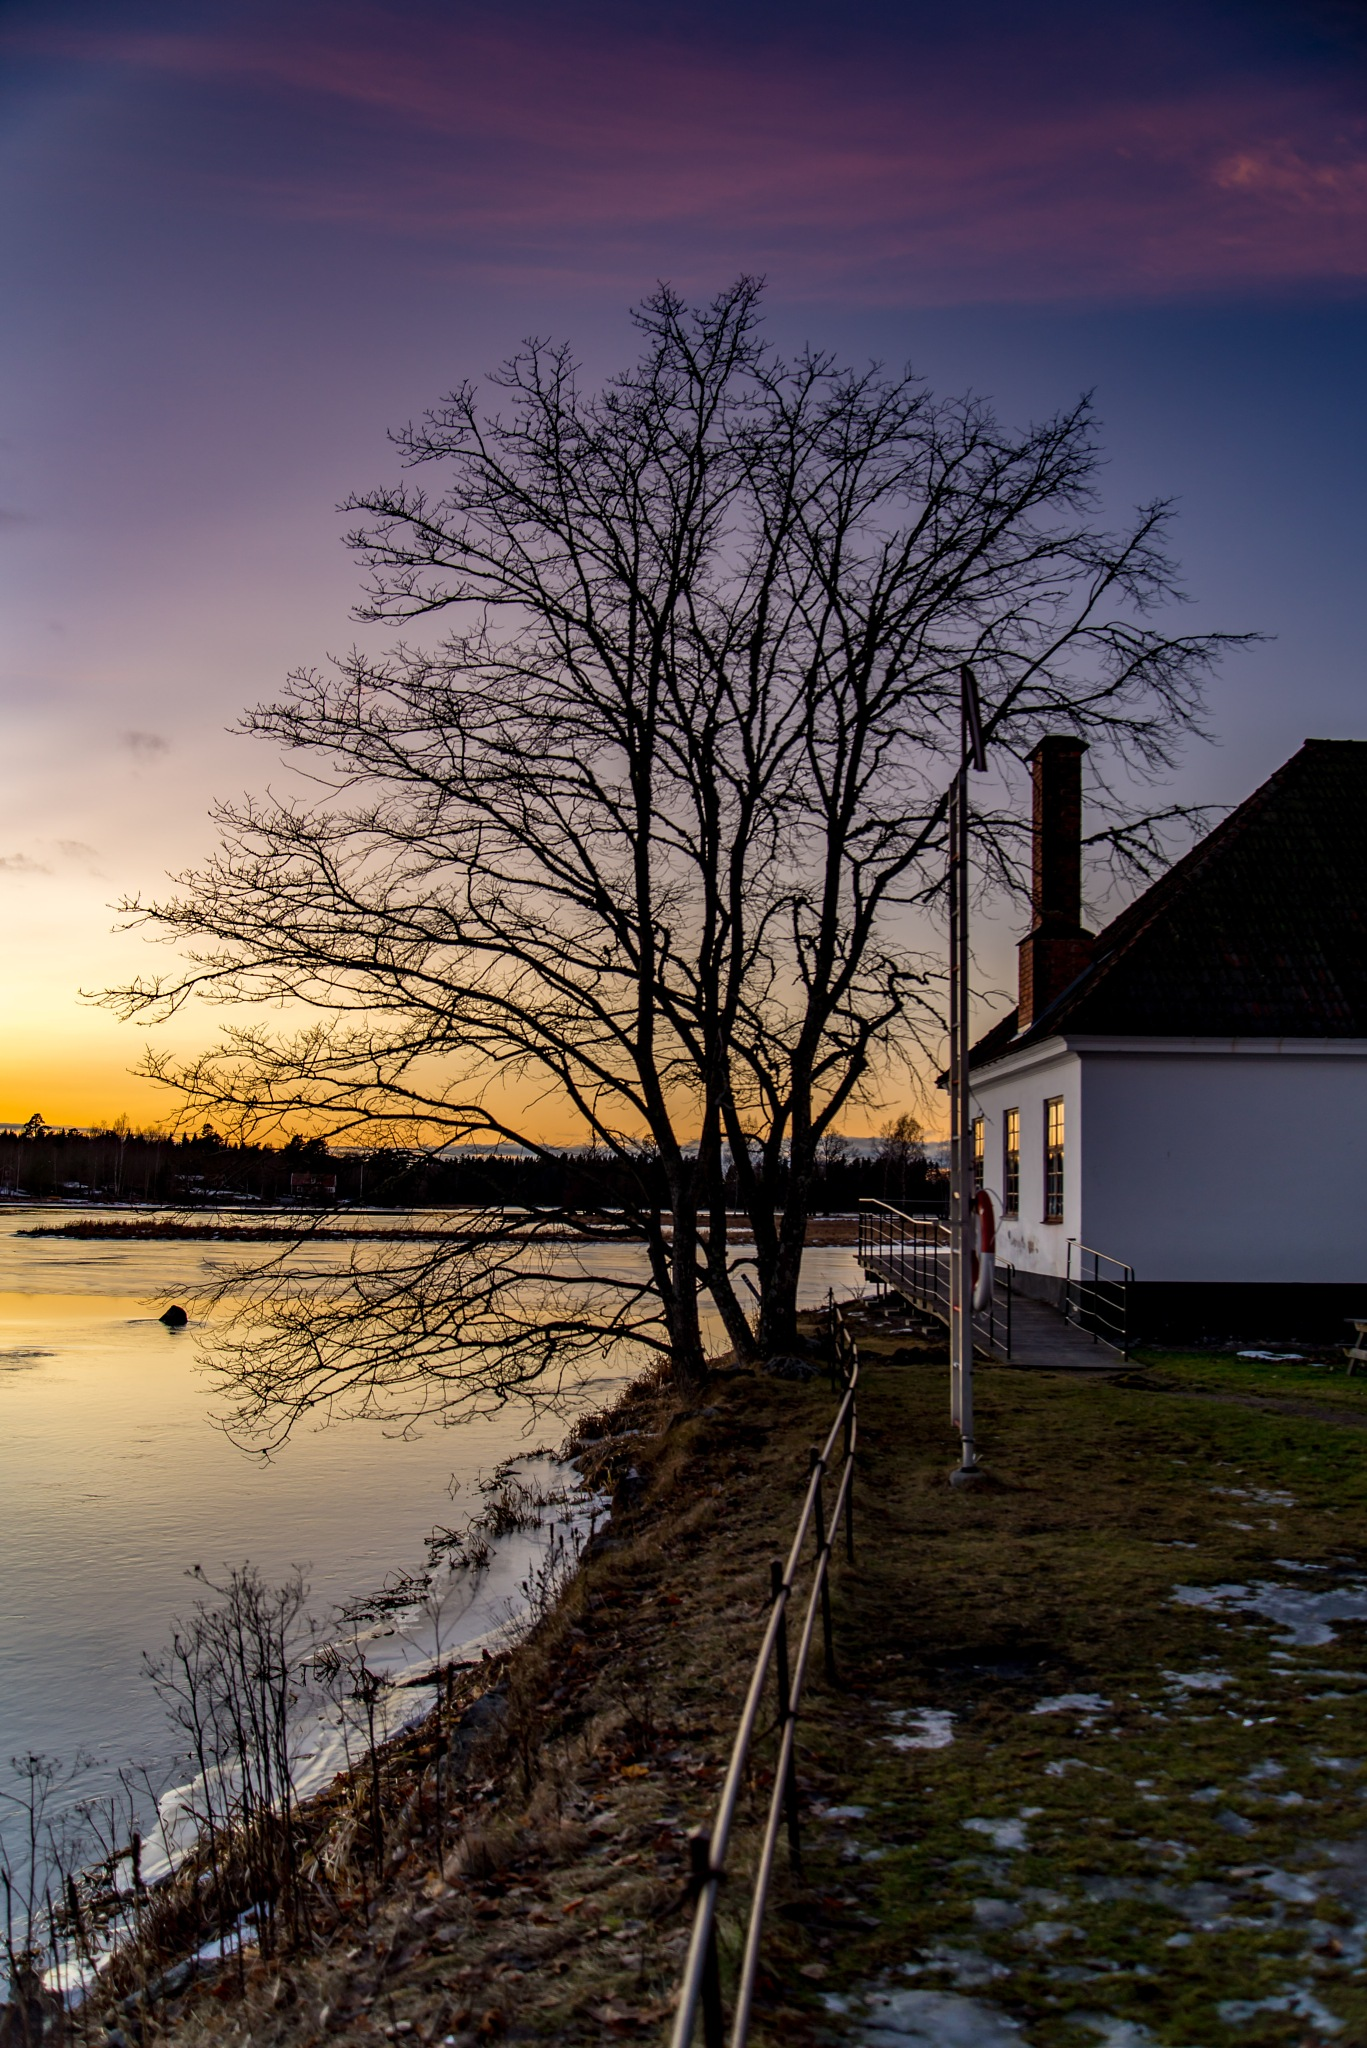 Sunset reflections by RogerF